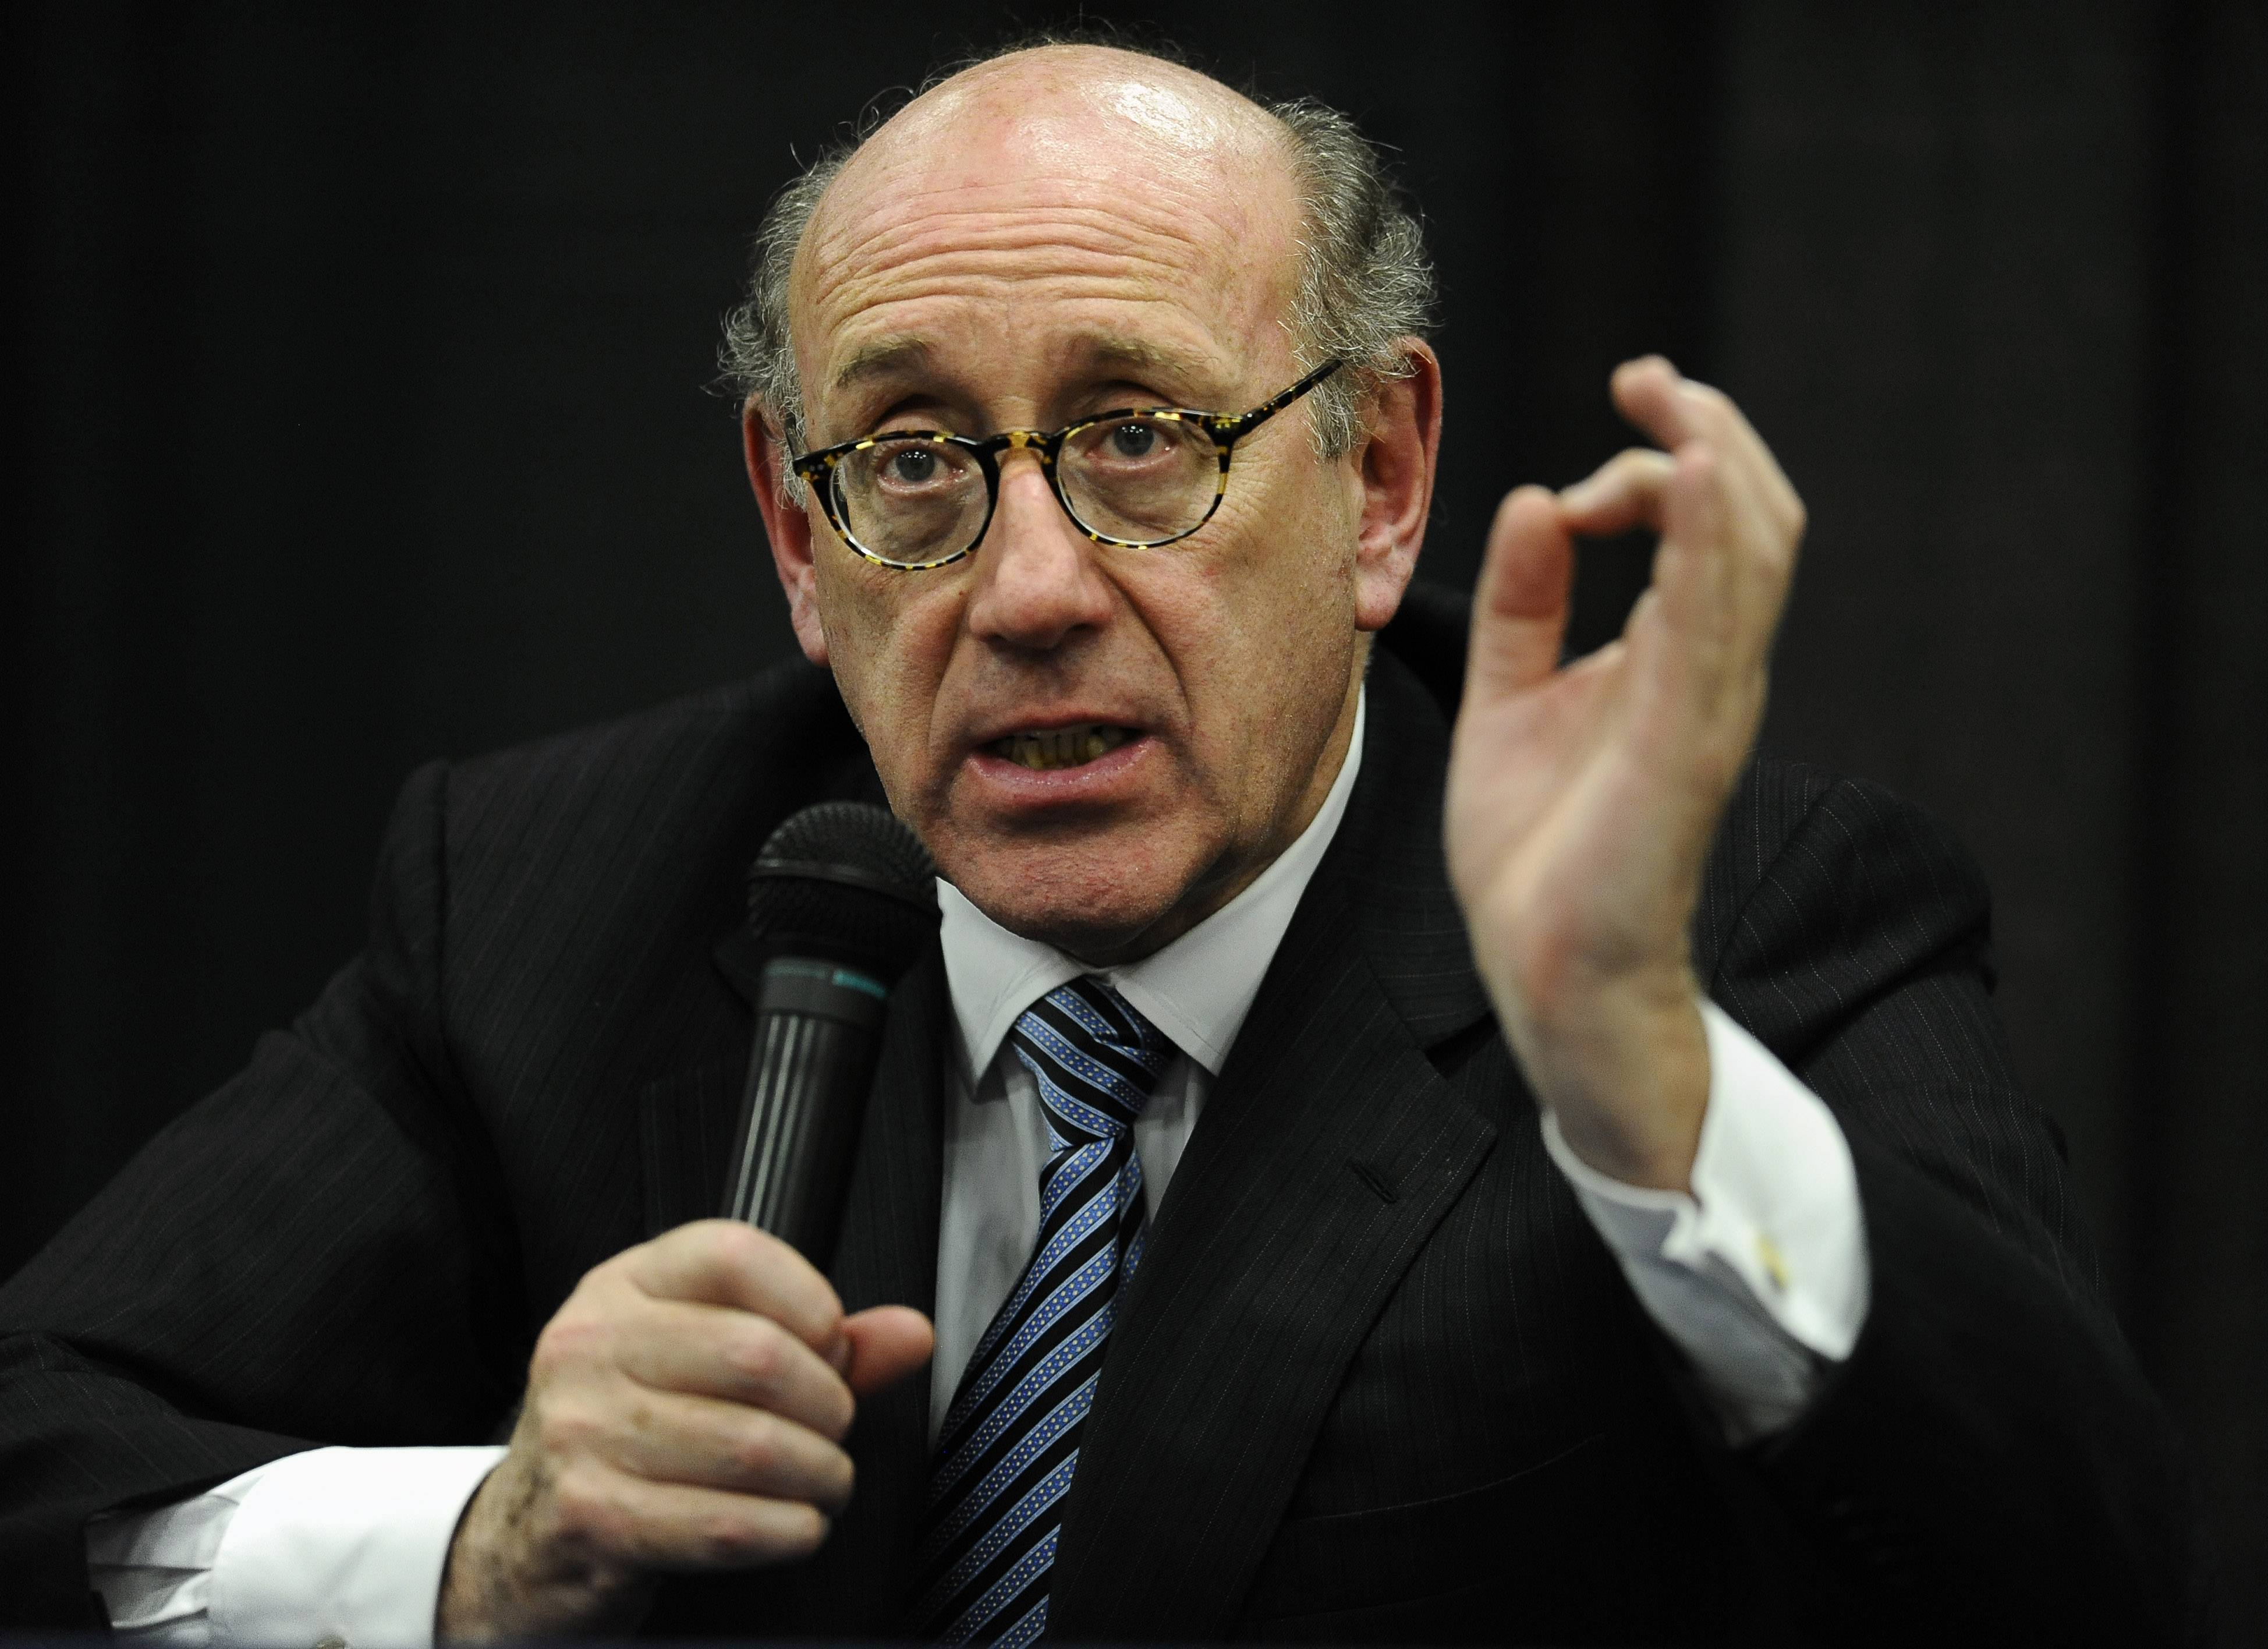 Attorney and special adviser Kenneth Feinberg speaks at a public forum on the distribution of Newtown donations at Edmond Town Hall in Newtown, Conn. Feinberg plans to announce on Monday the terms of General Motors' plan to pay victims of crashes caused by bad ignition switches.